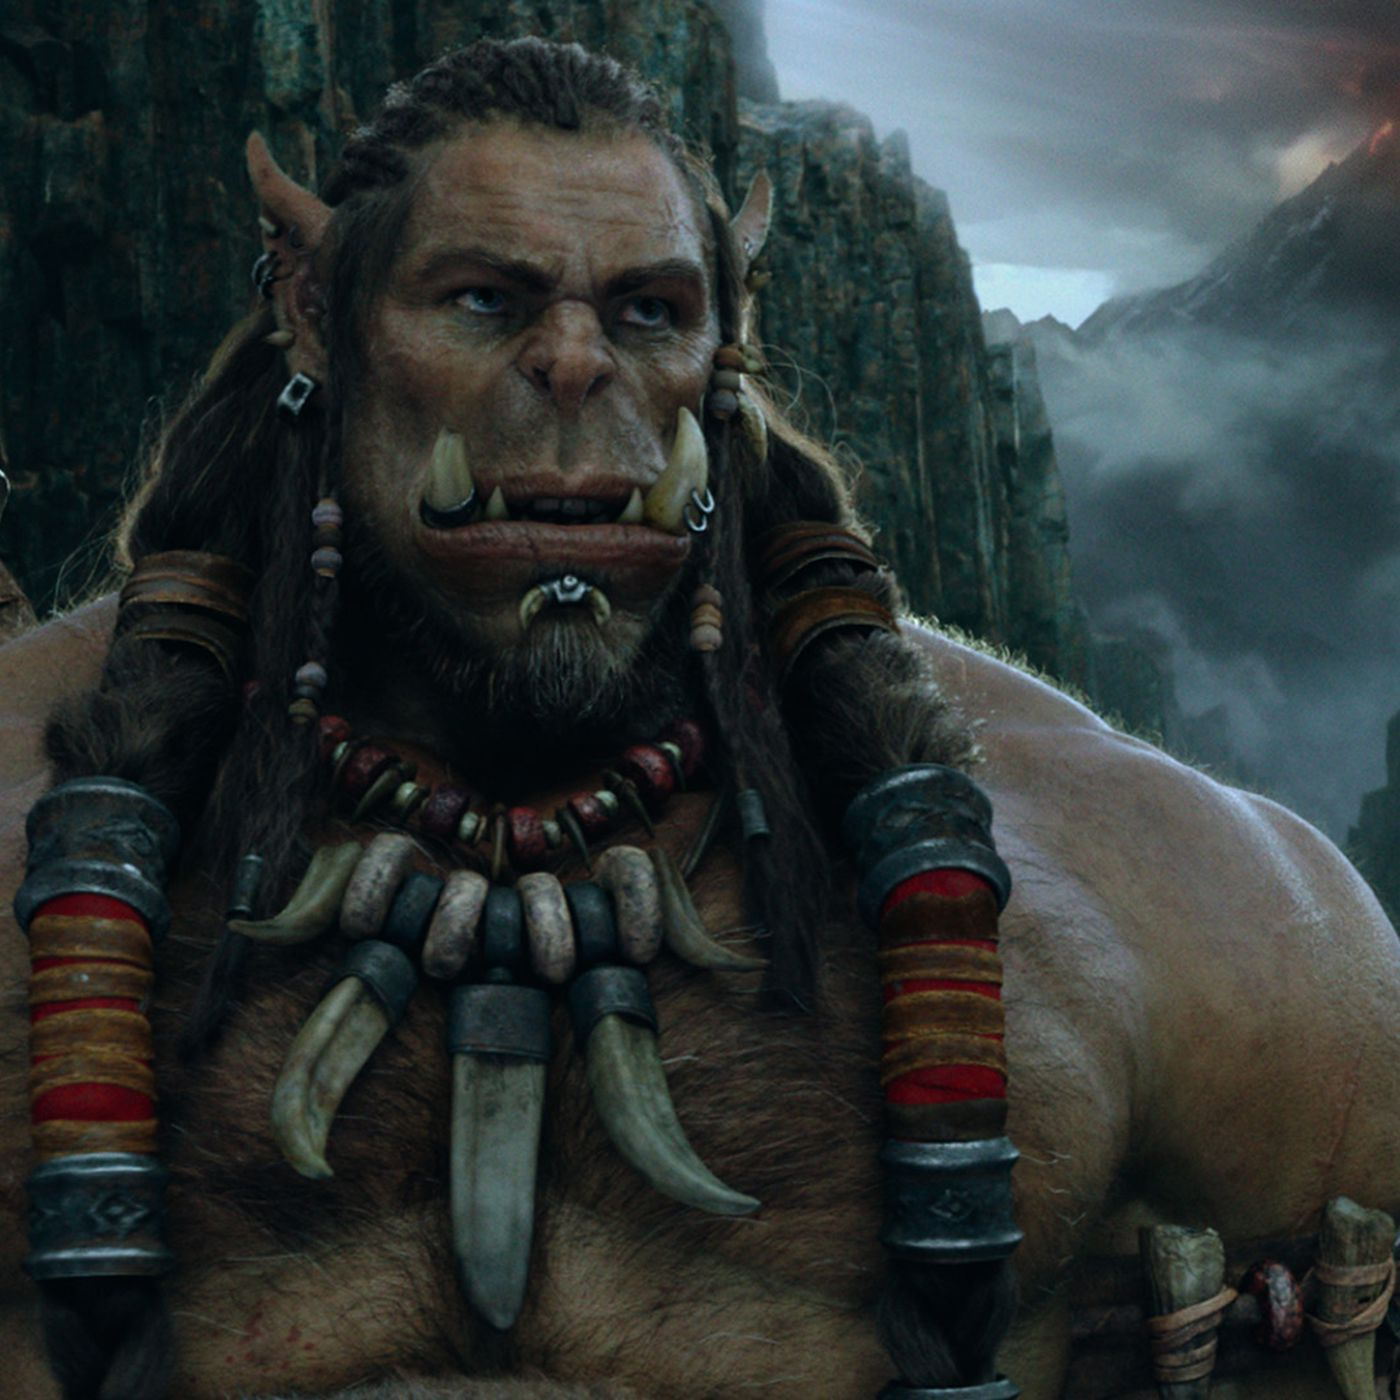 Warcraft review: All that could have been | Polygon